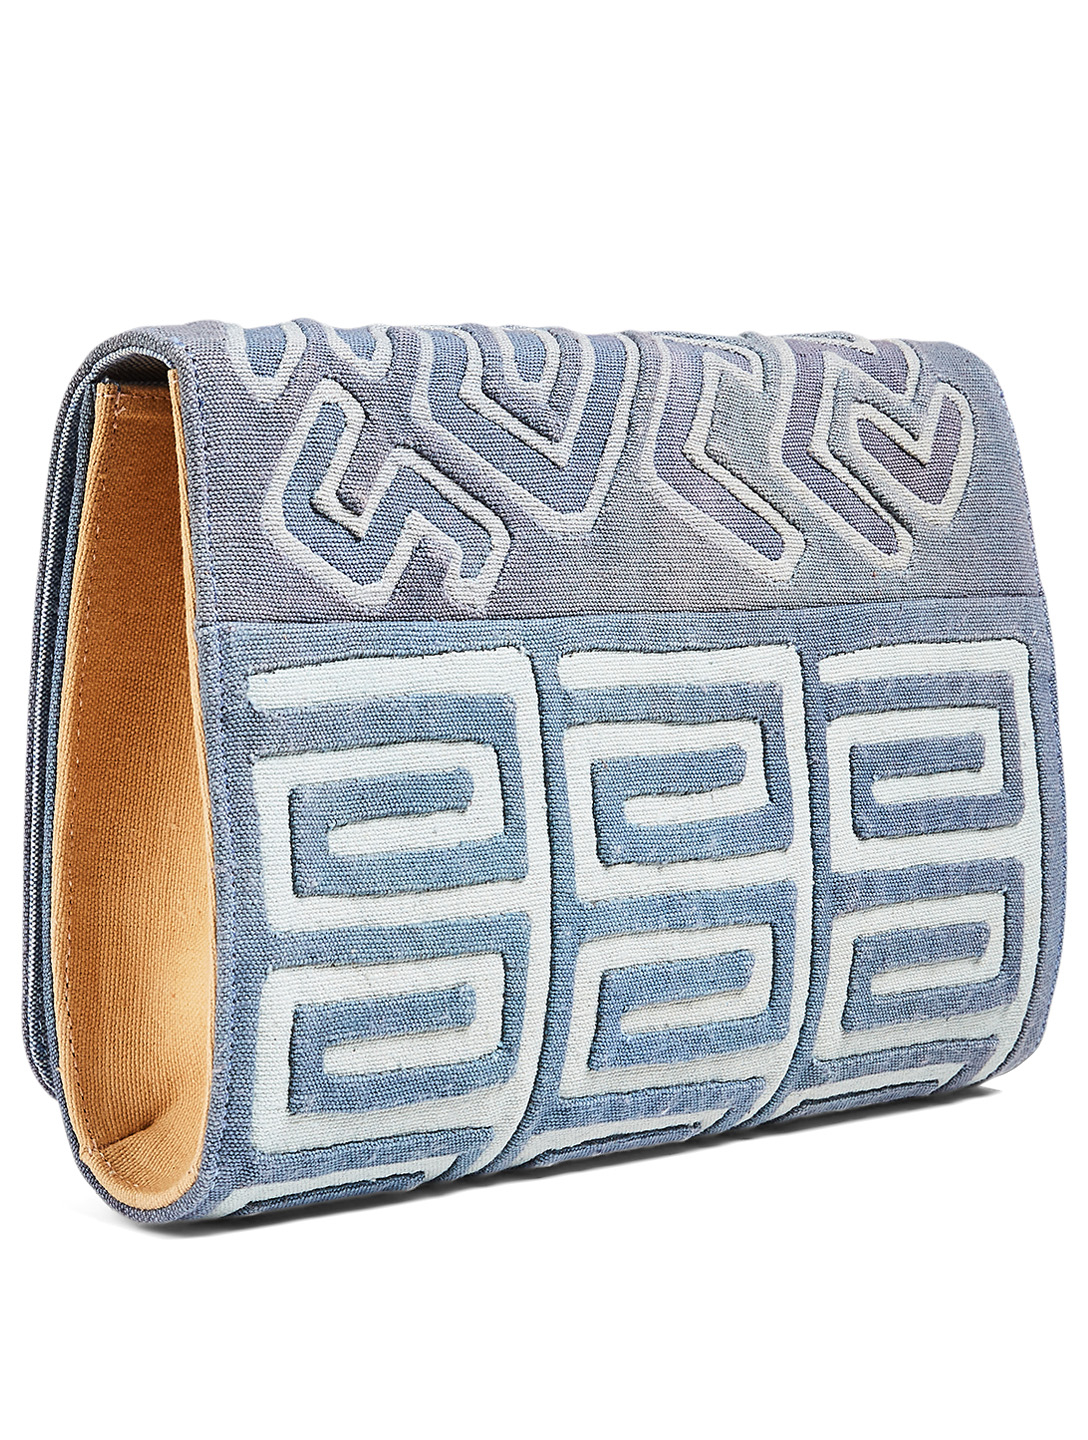 MOLA SASA Kuna Envelope Clutch H Project Multi